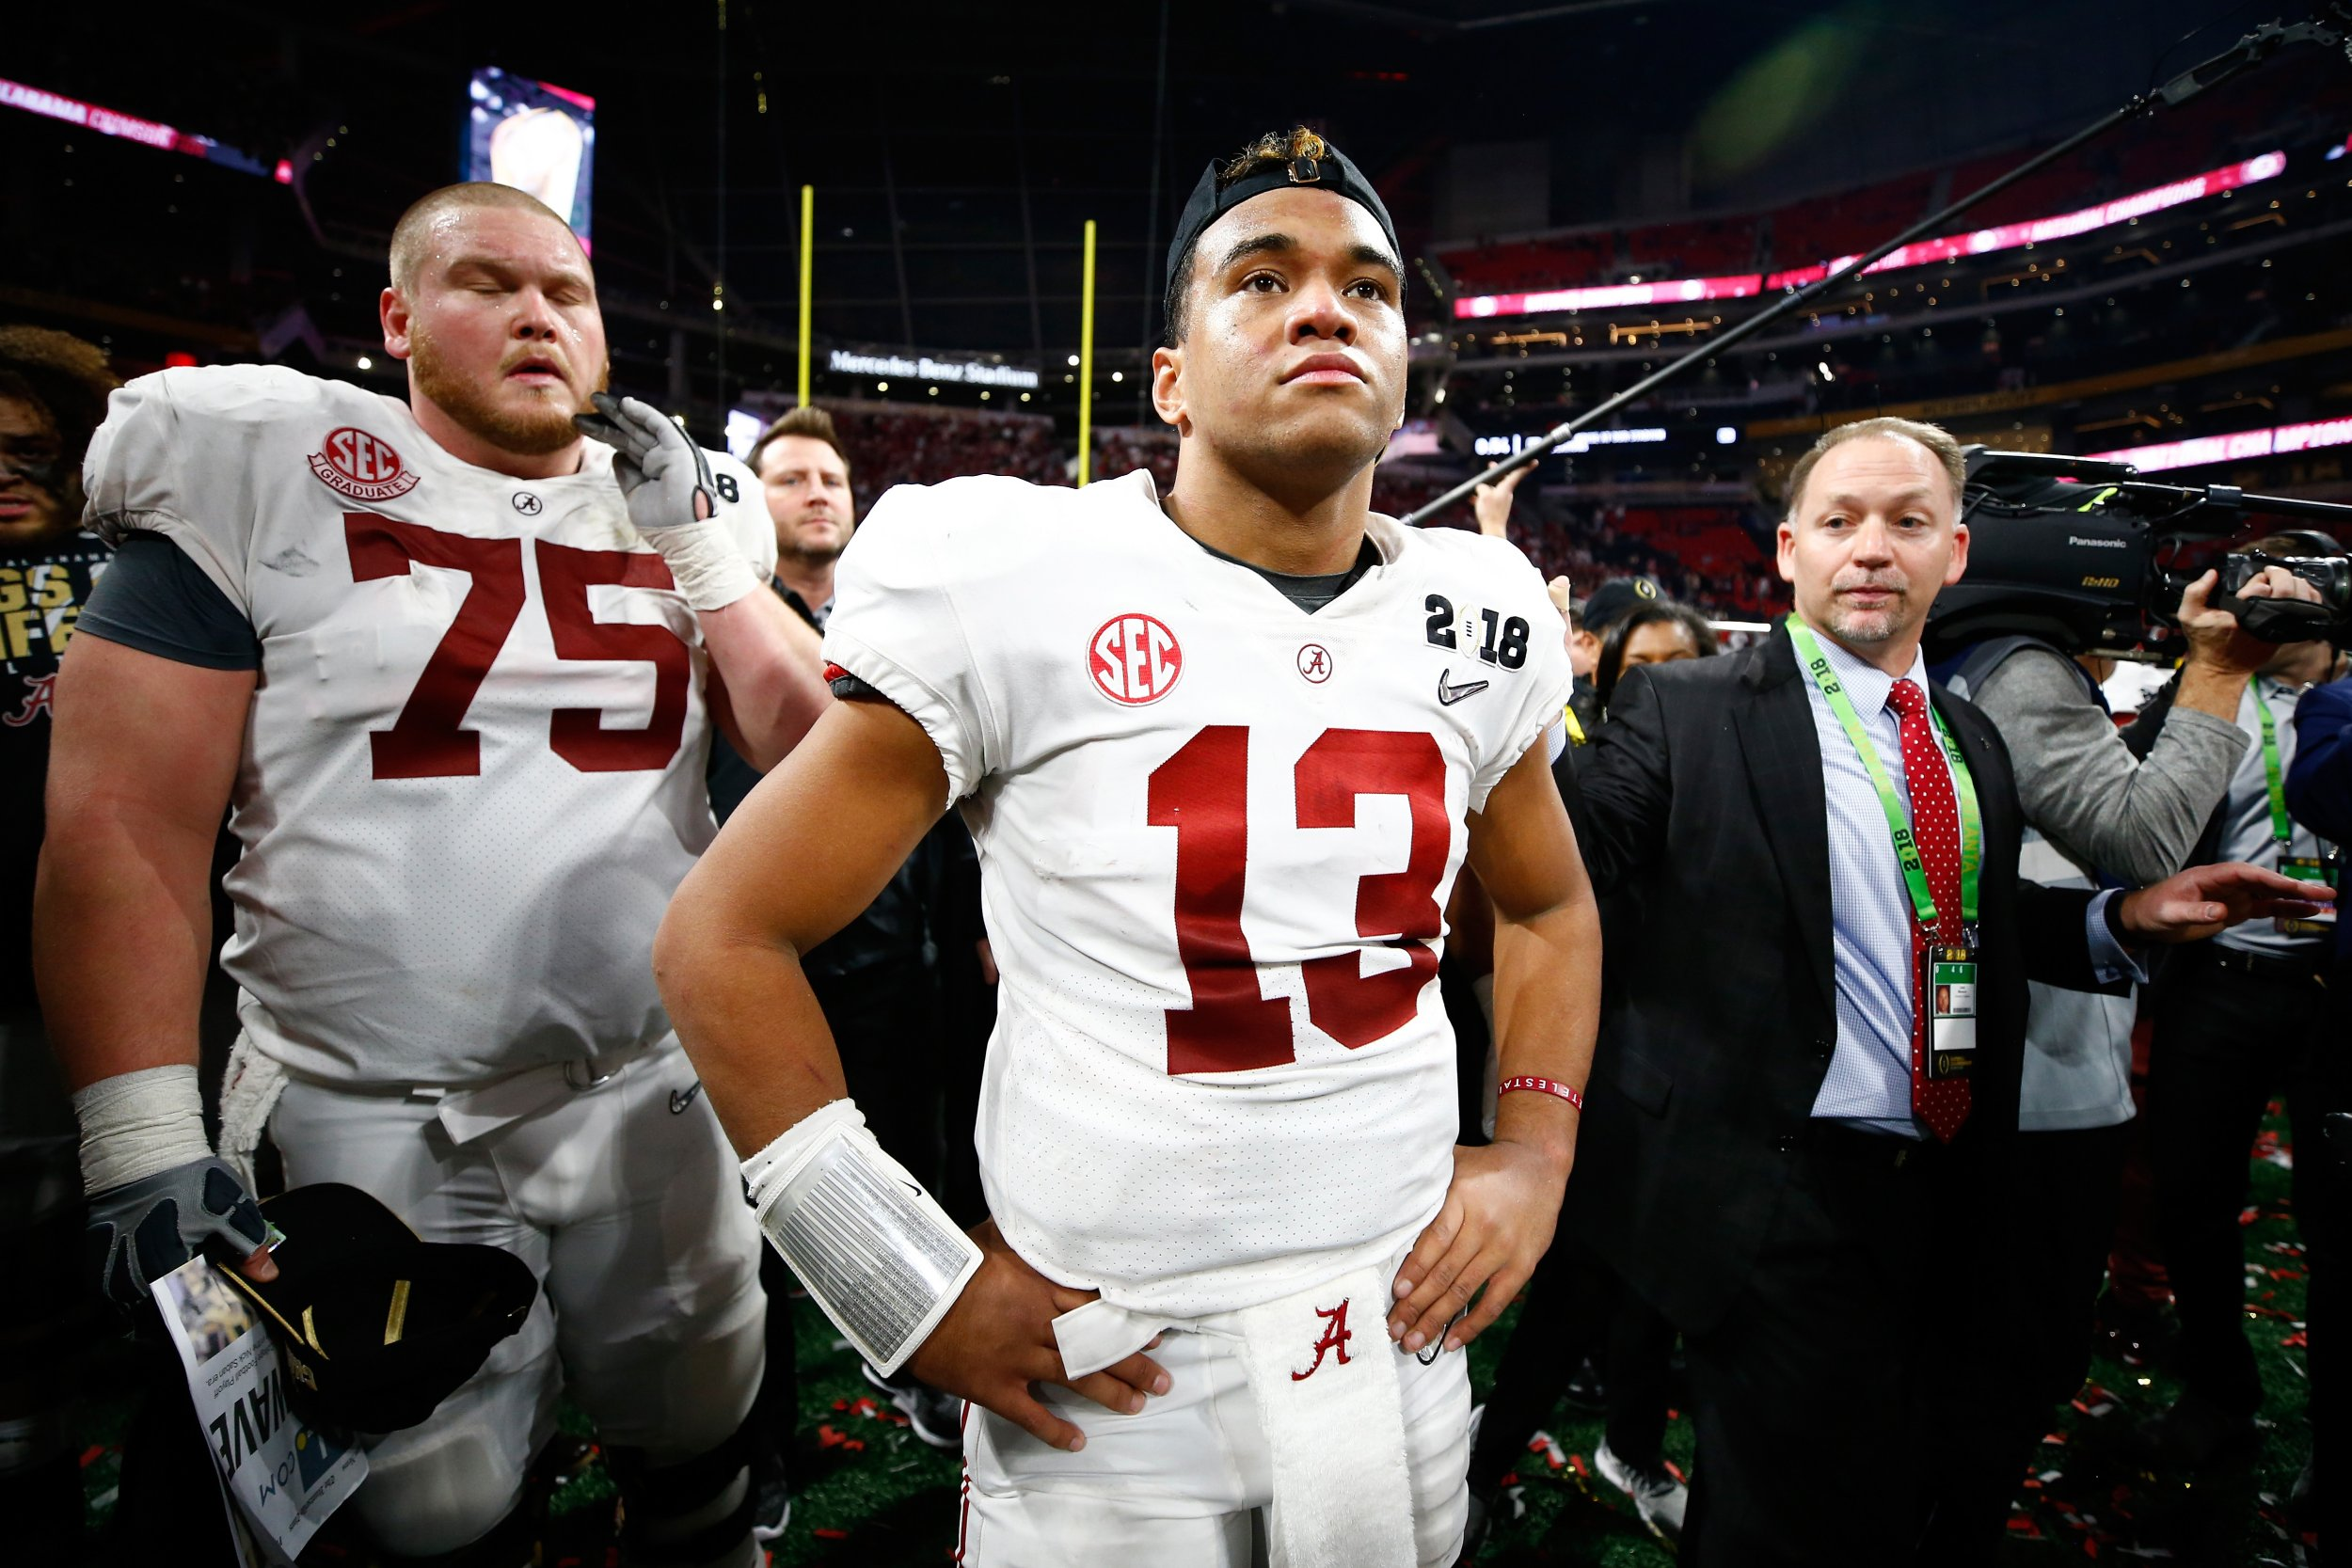 Alabama freshman quarterback Tua Tagovailoa, center.